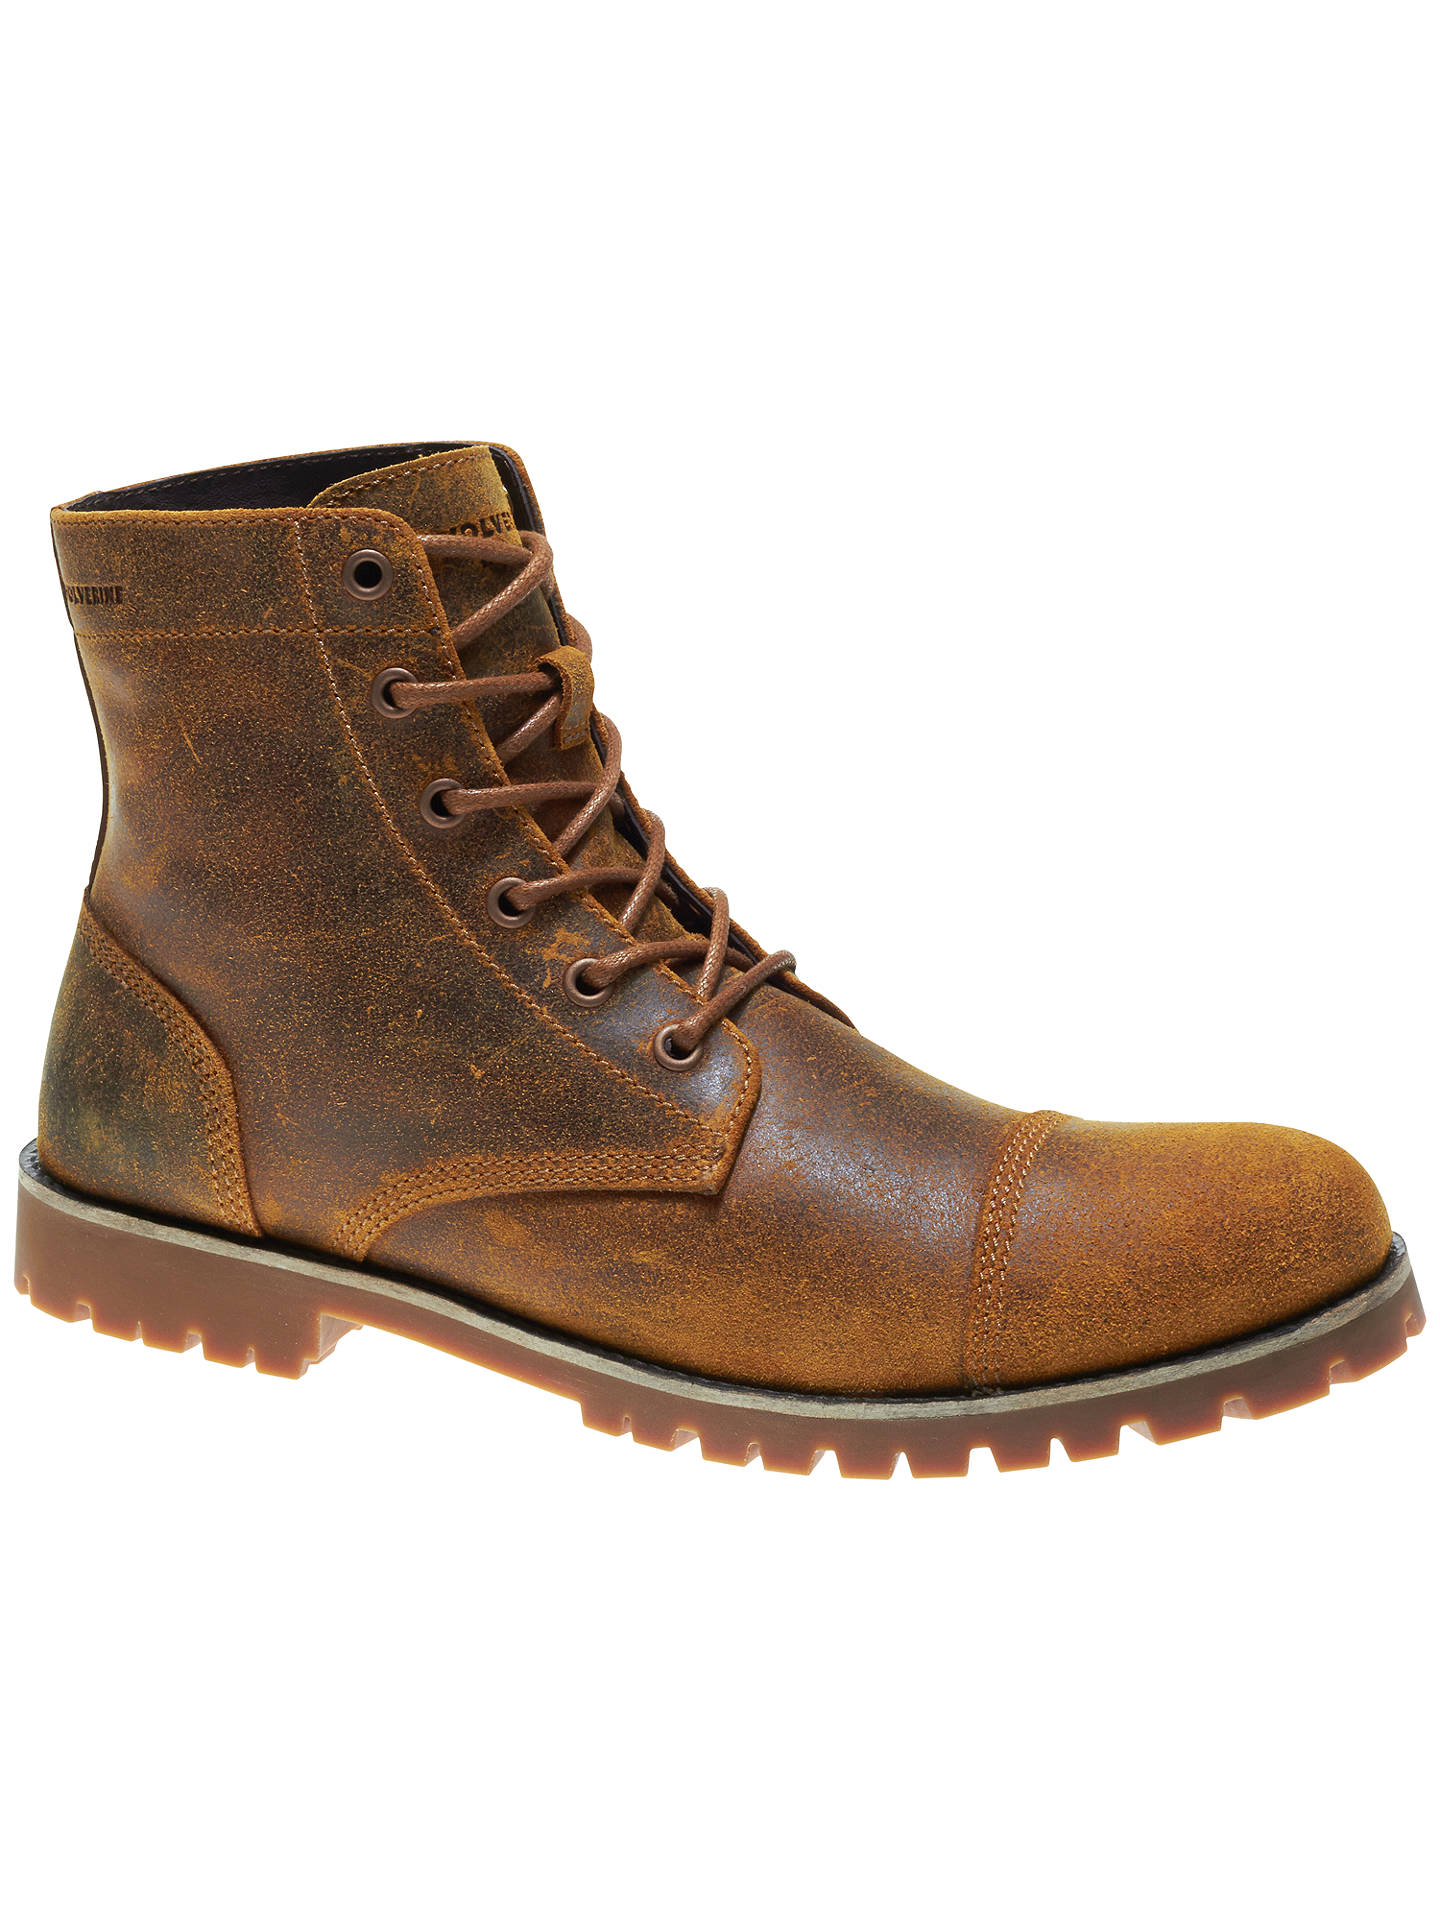 2a925ca1171 Wolverine Wilbur Leather Boots, Tan at John Lewis & Partners